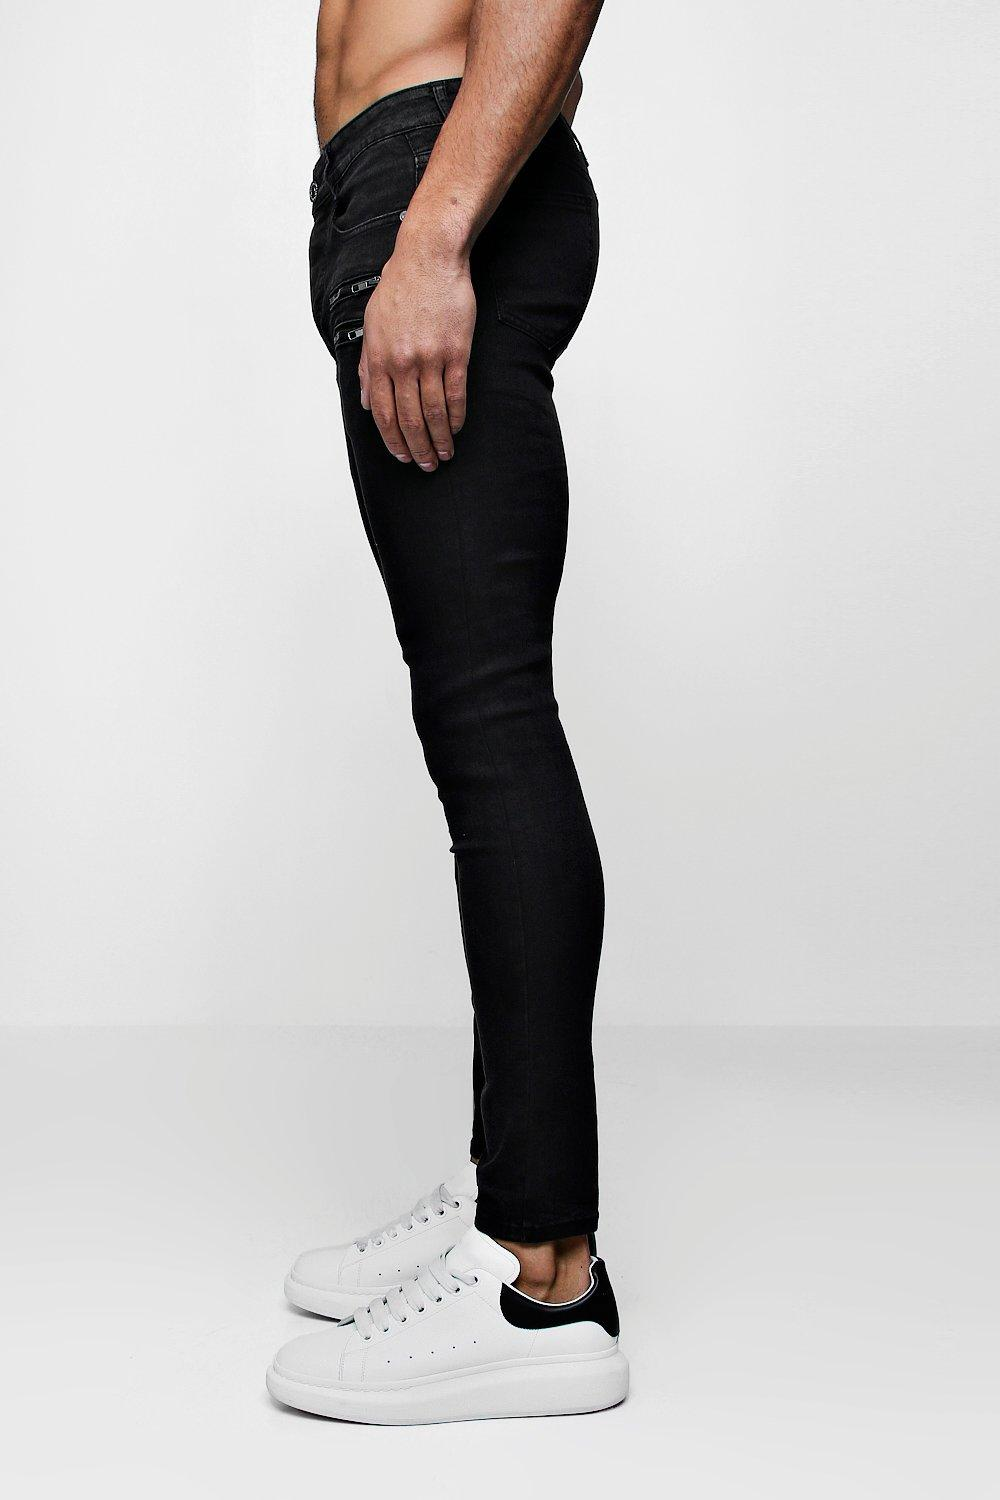 Super Detail Skinny black Jeans Zip washed With PcP8qOr